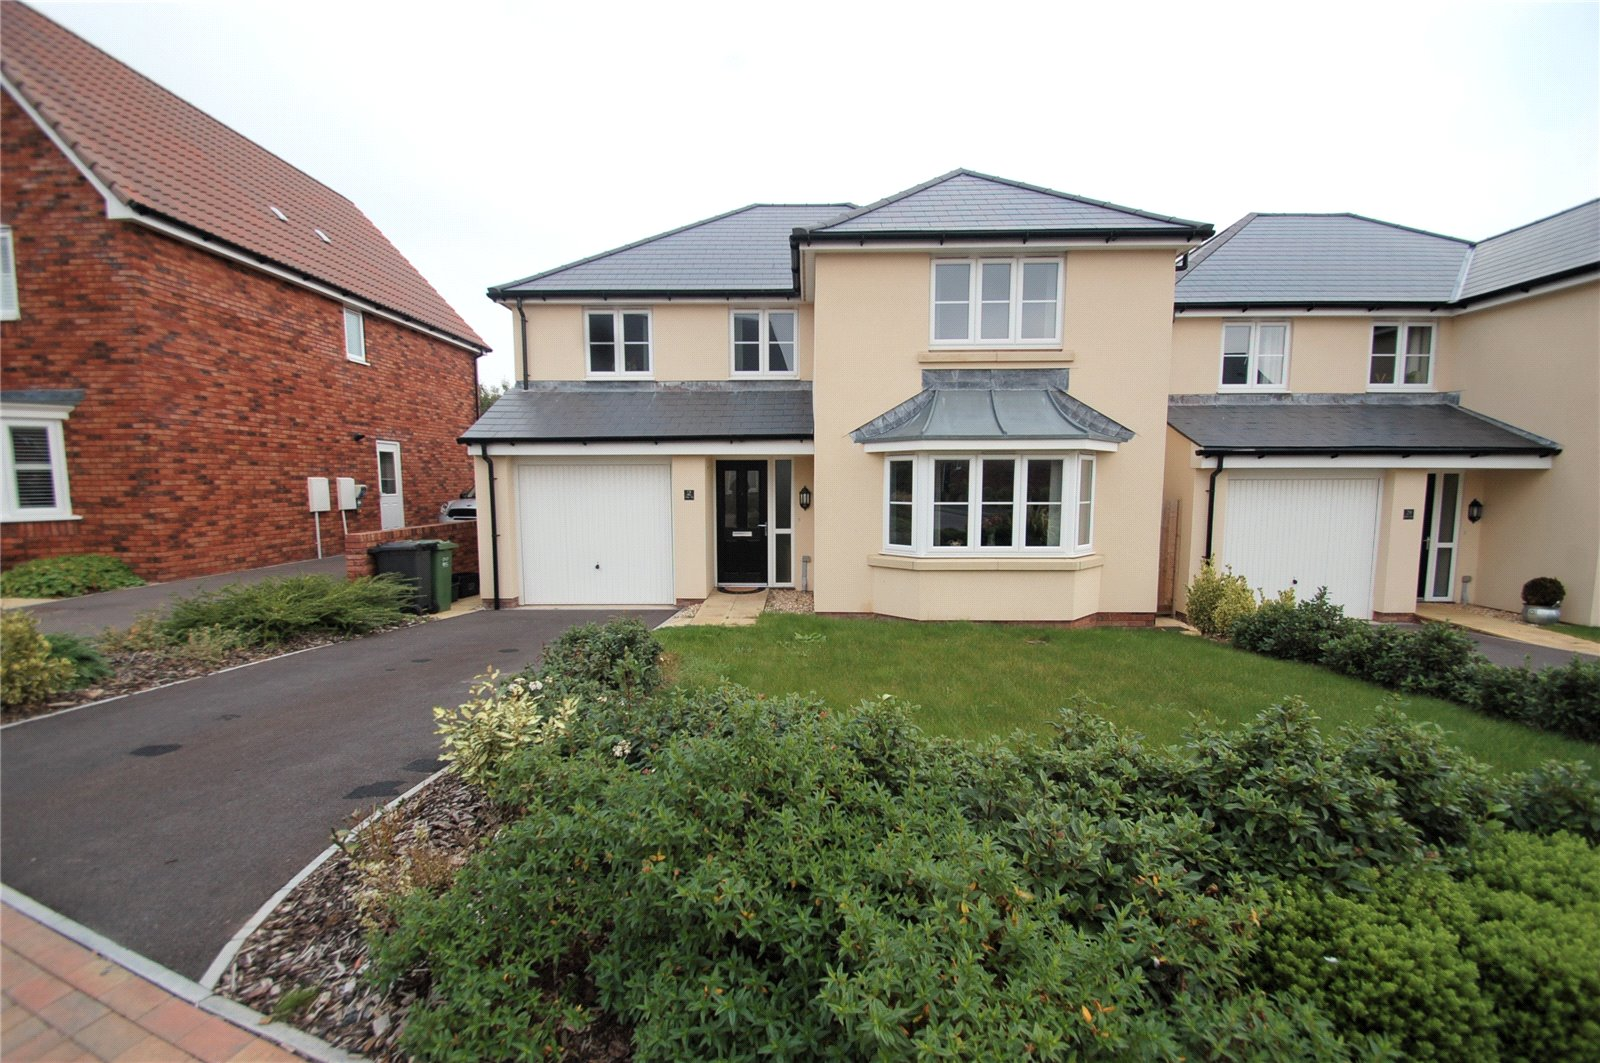 4 Bedrooms Detached House for sale in Cristata Way Willstock Village North Petherton TA5